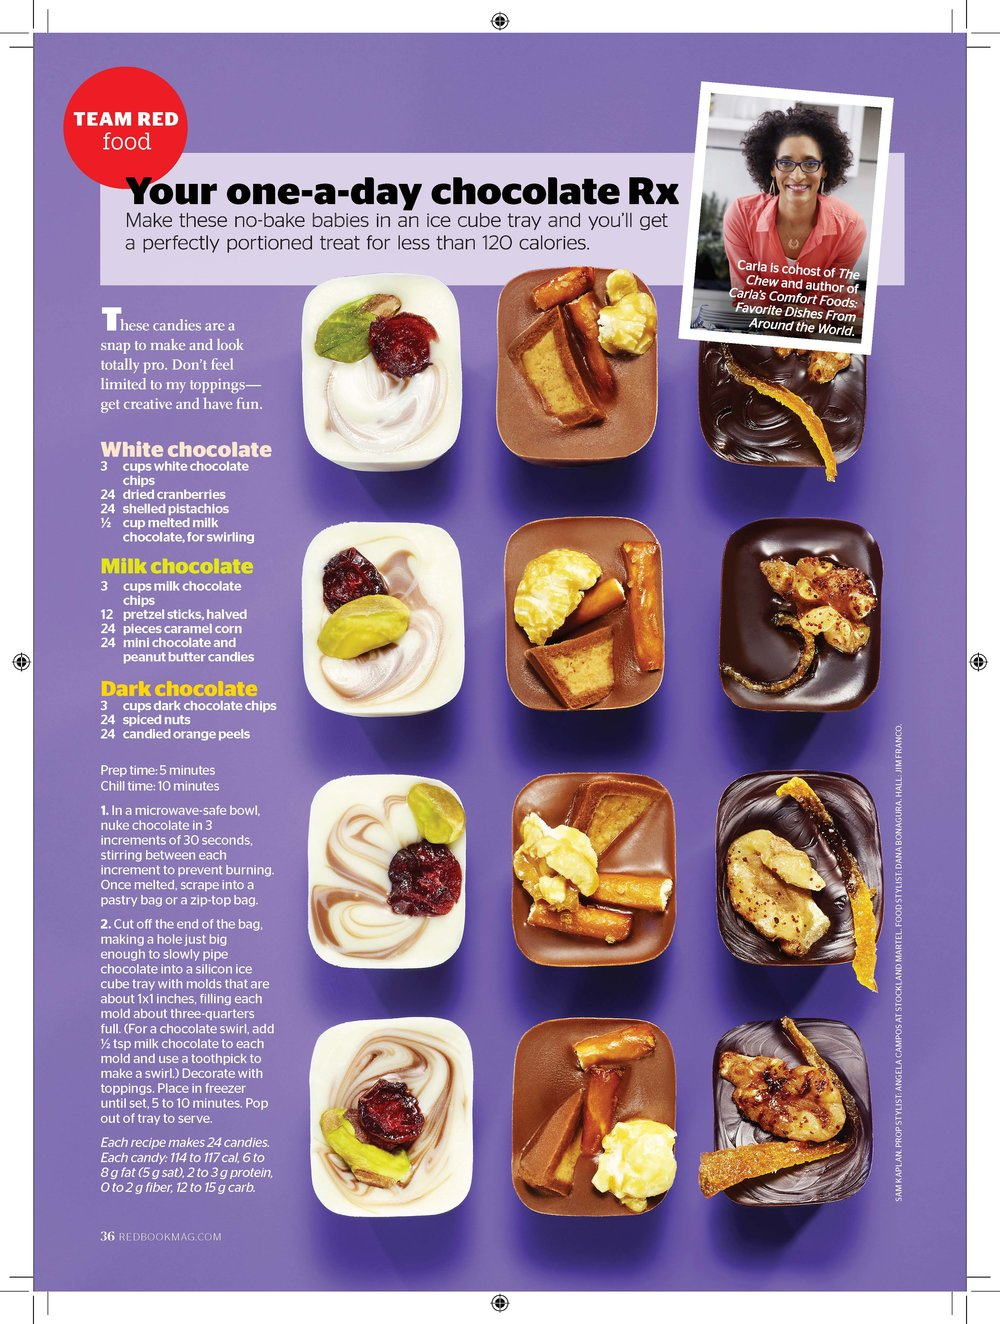 Redbook - Chocolates Tear.jpg